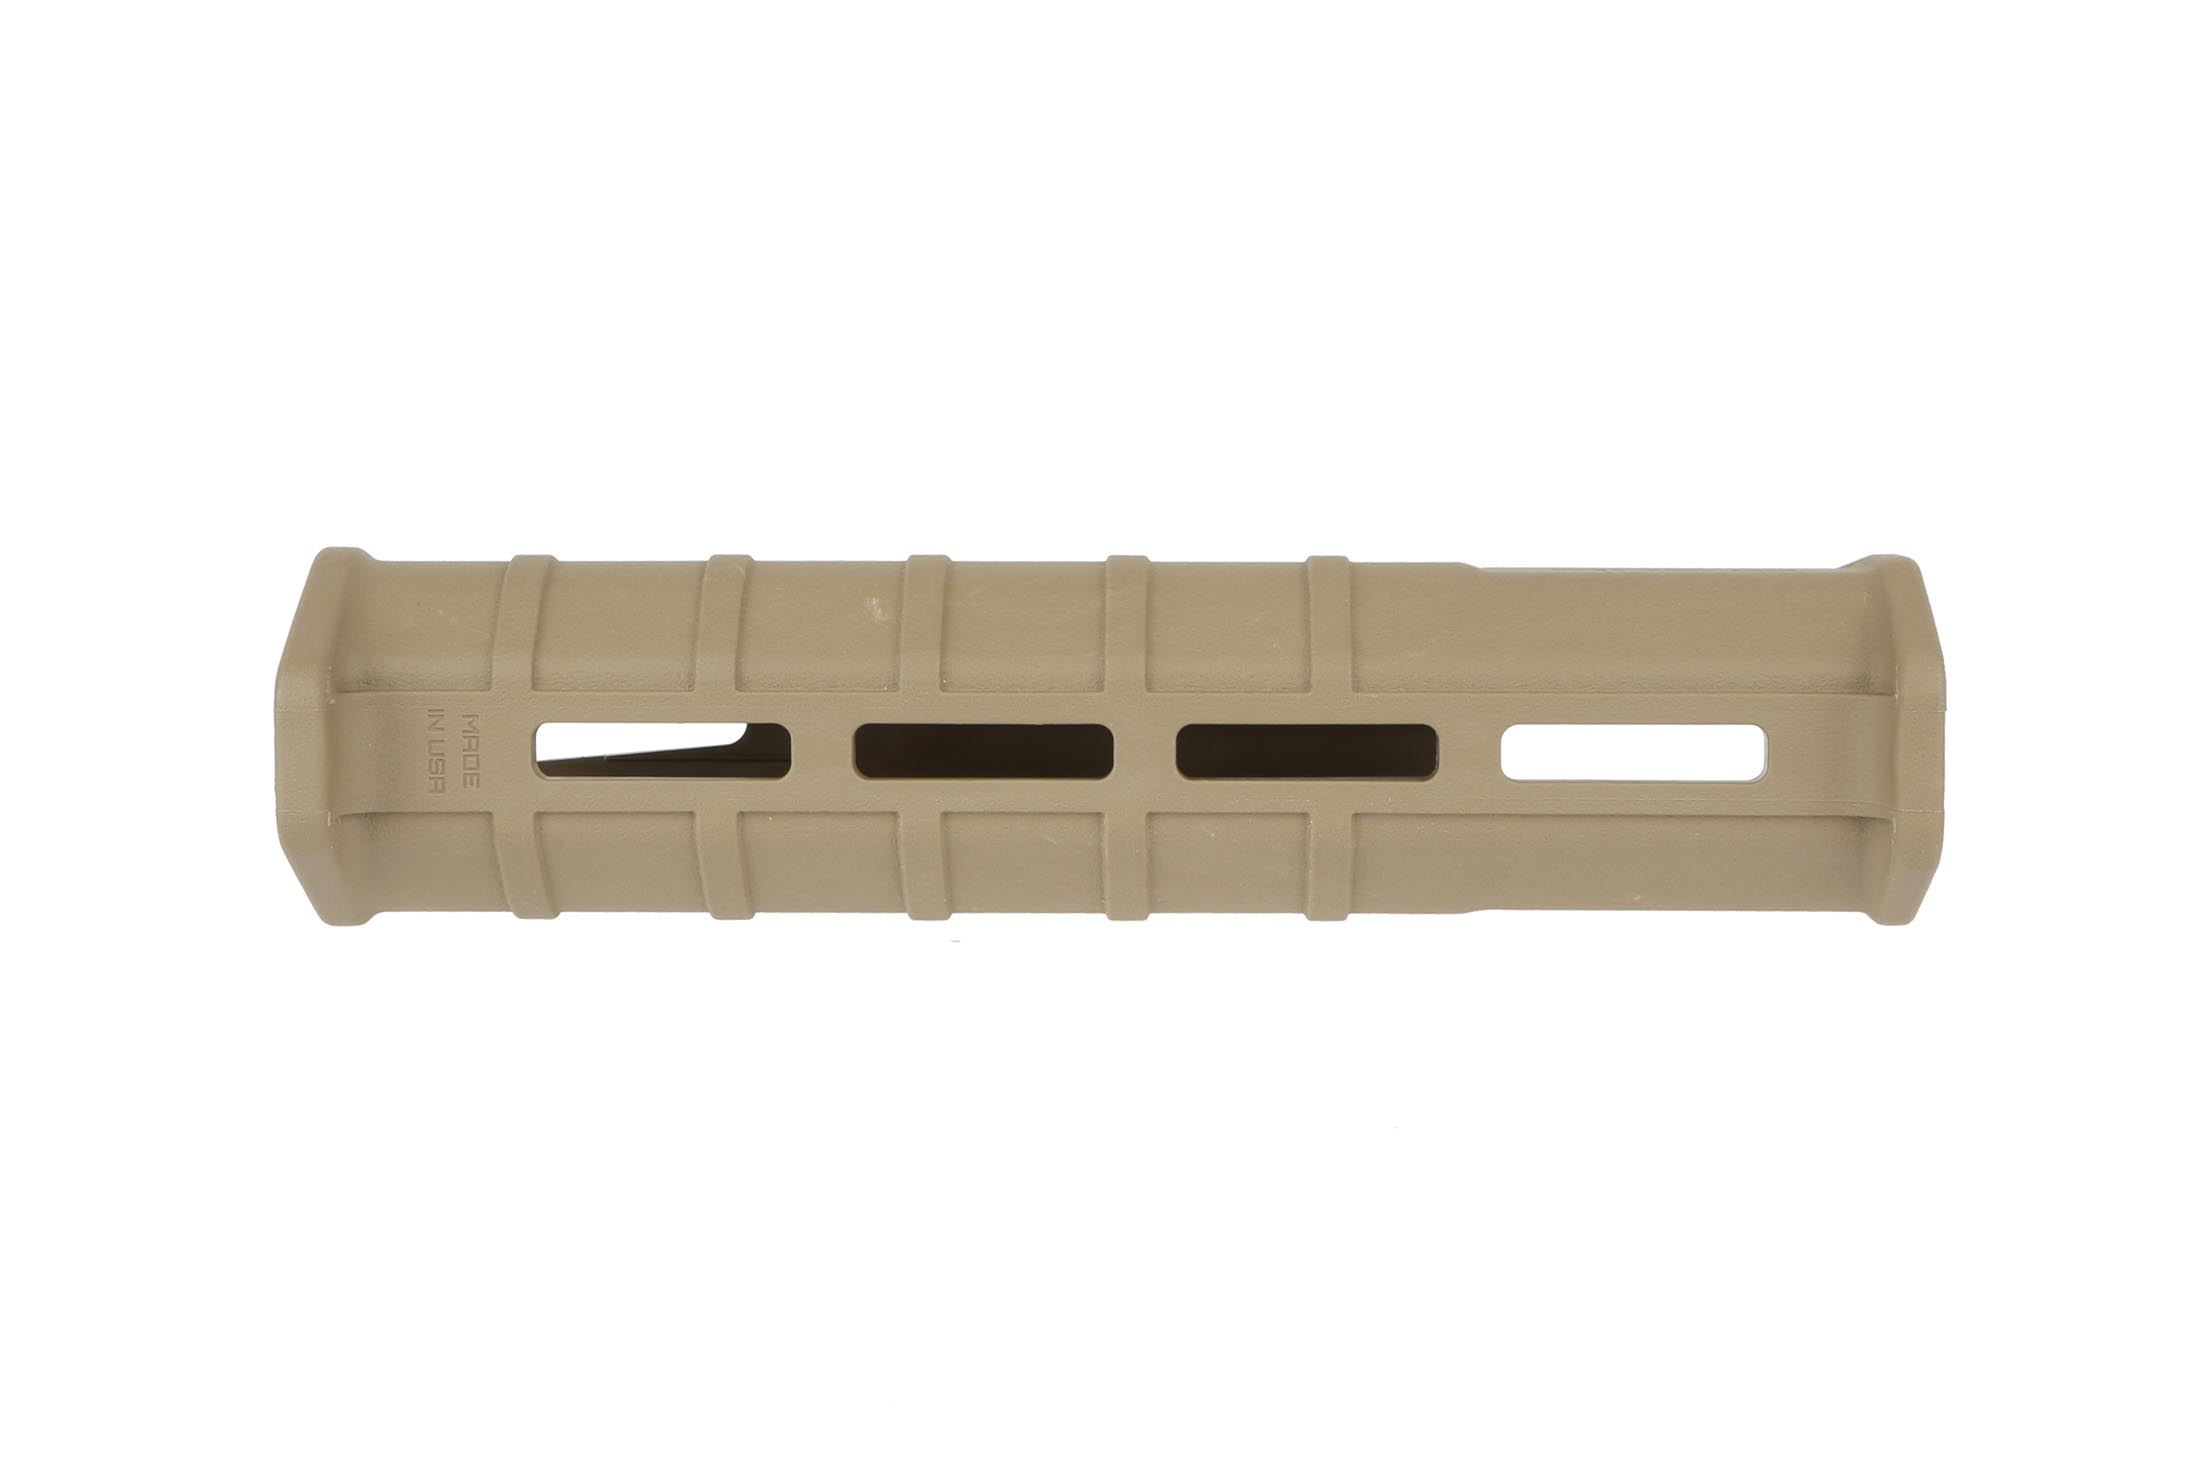 The magpul moe m-lok forend stock for 12 gauge shotguns makes working the action much easier